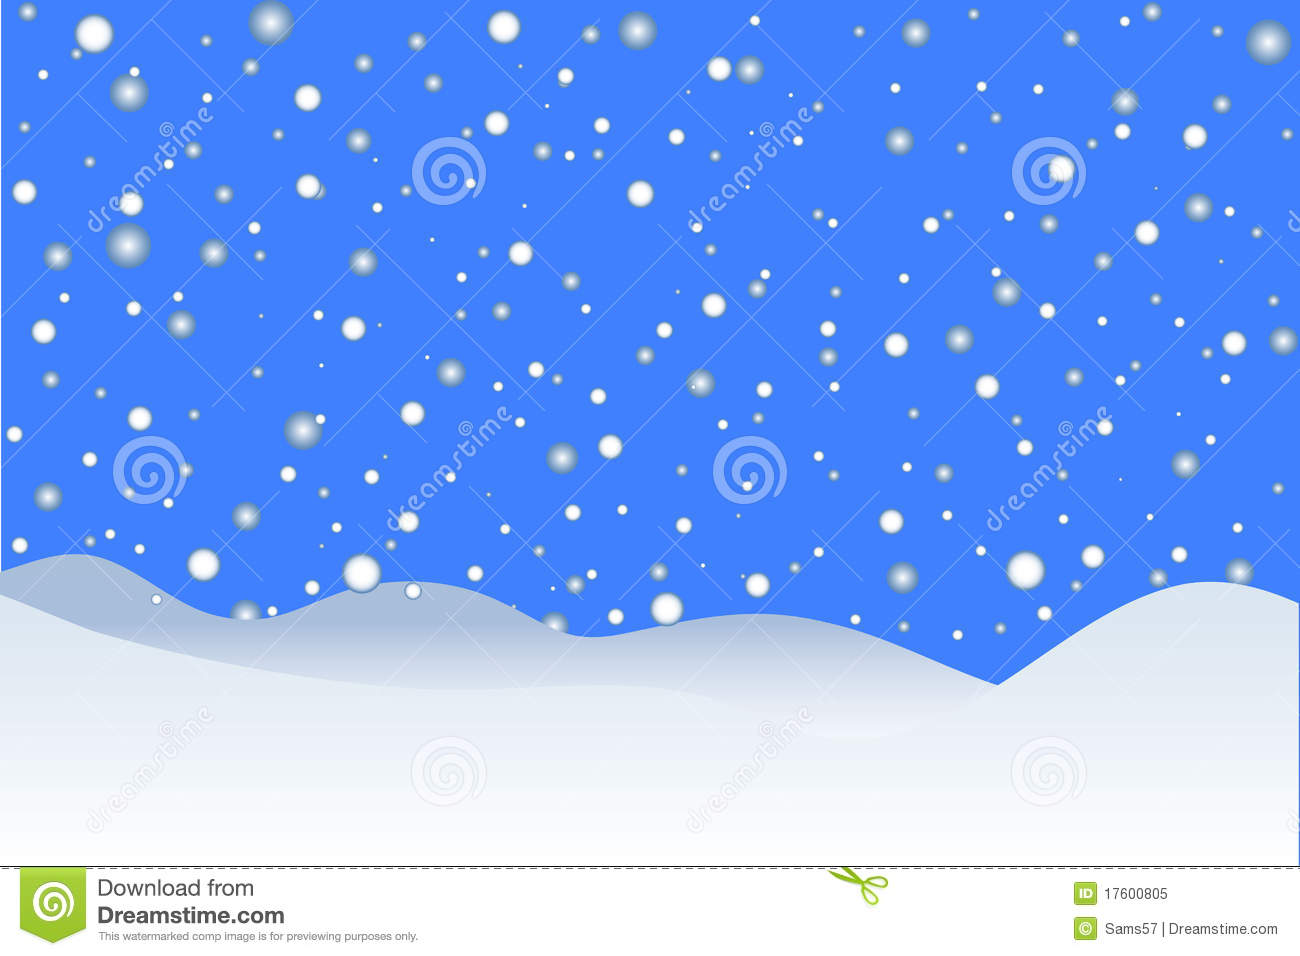 Wallpaper Border Falling Off Snowing Winter Background Stock Vector Image Of Beauty